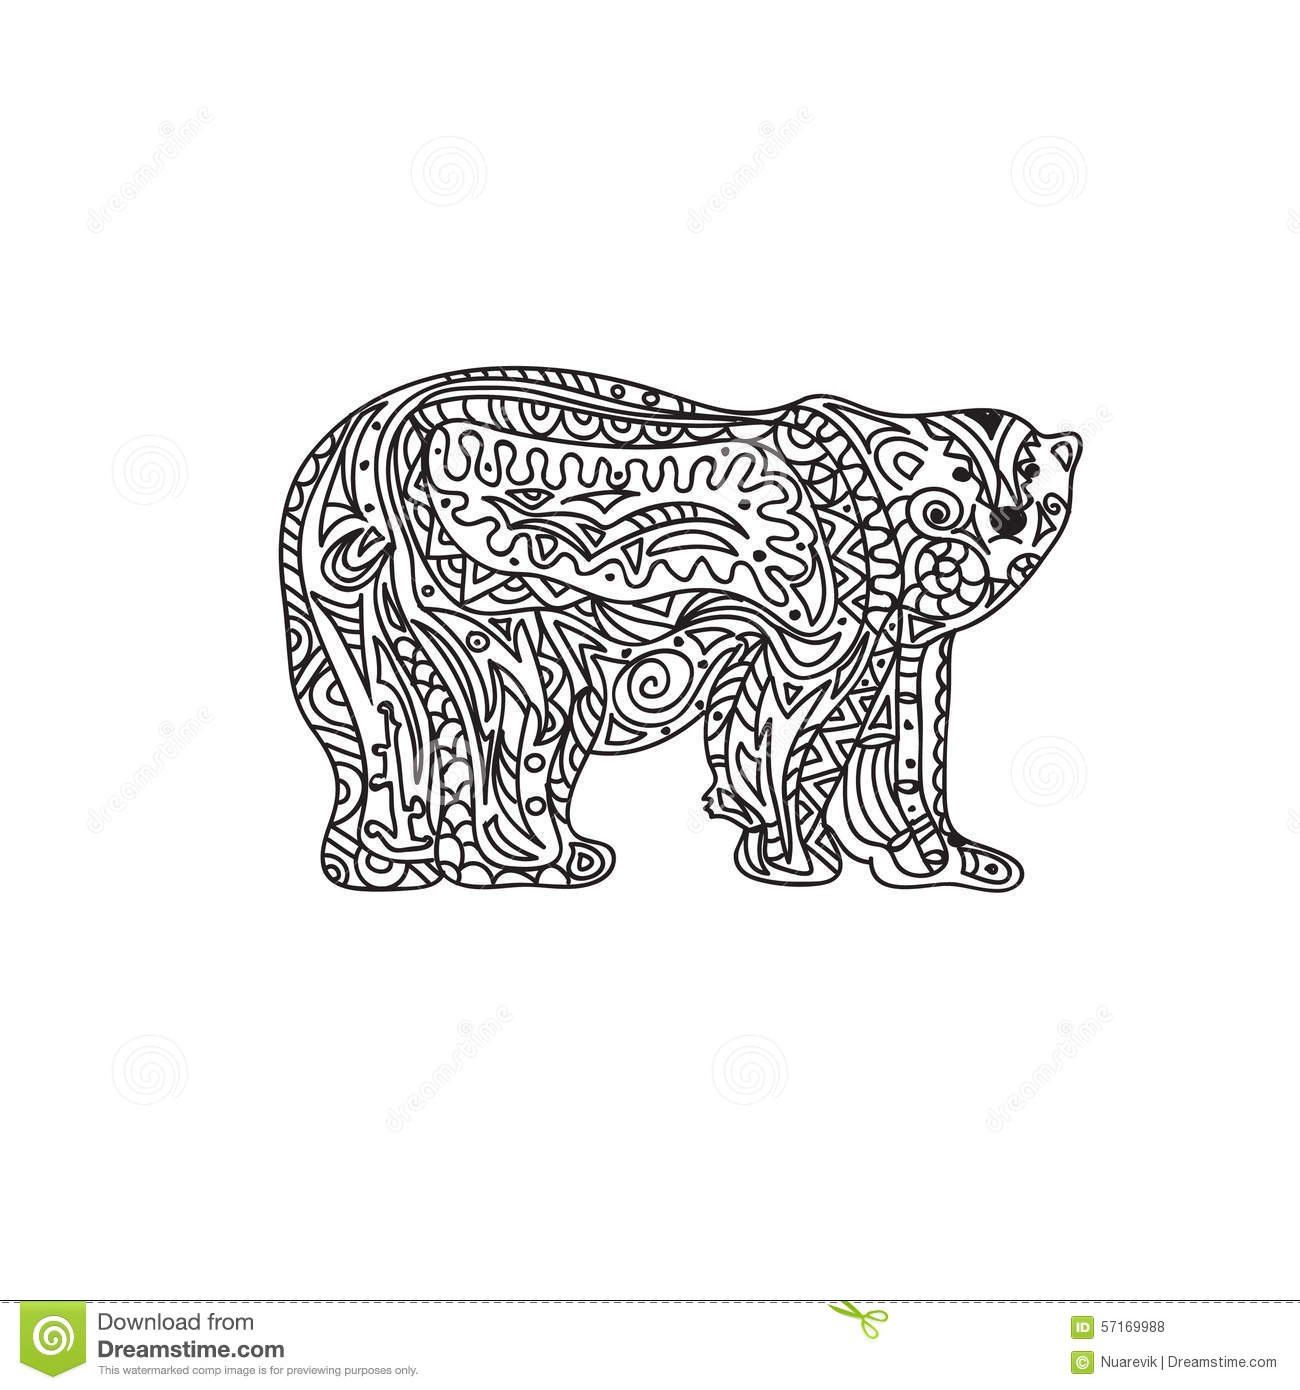 coloring page for black bear image